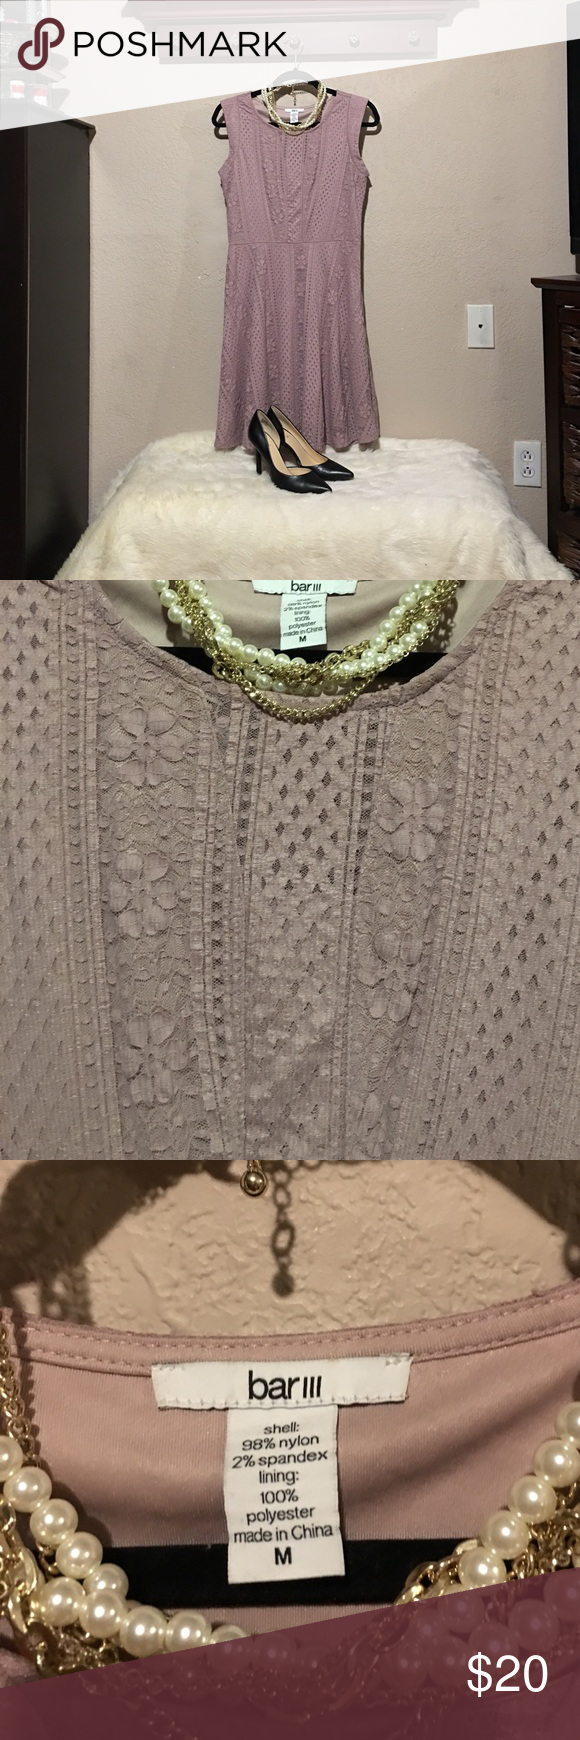 Bar ||| blush/taupe colored dress size medium Beautiful spring dress. A line lace dress in a size medium. Very comfortable! Bar III Dresses